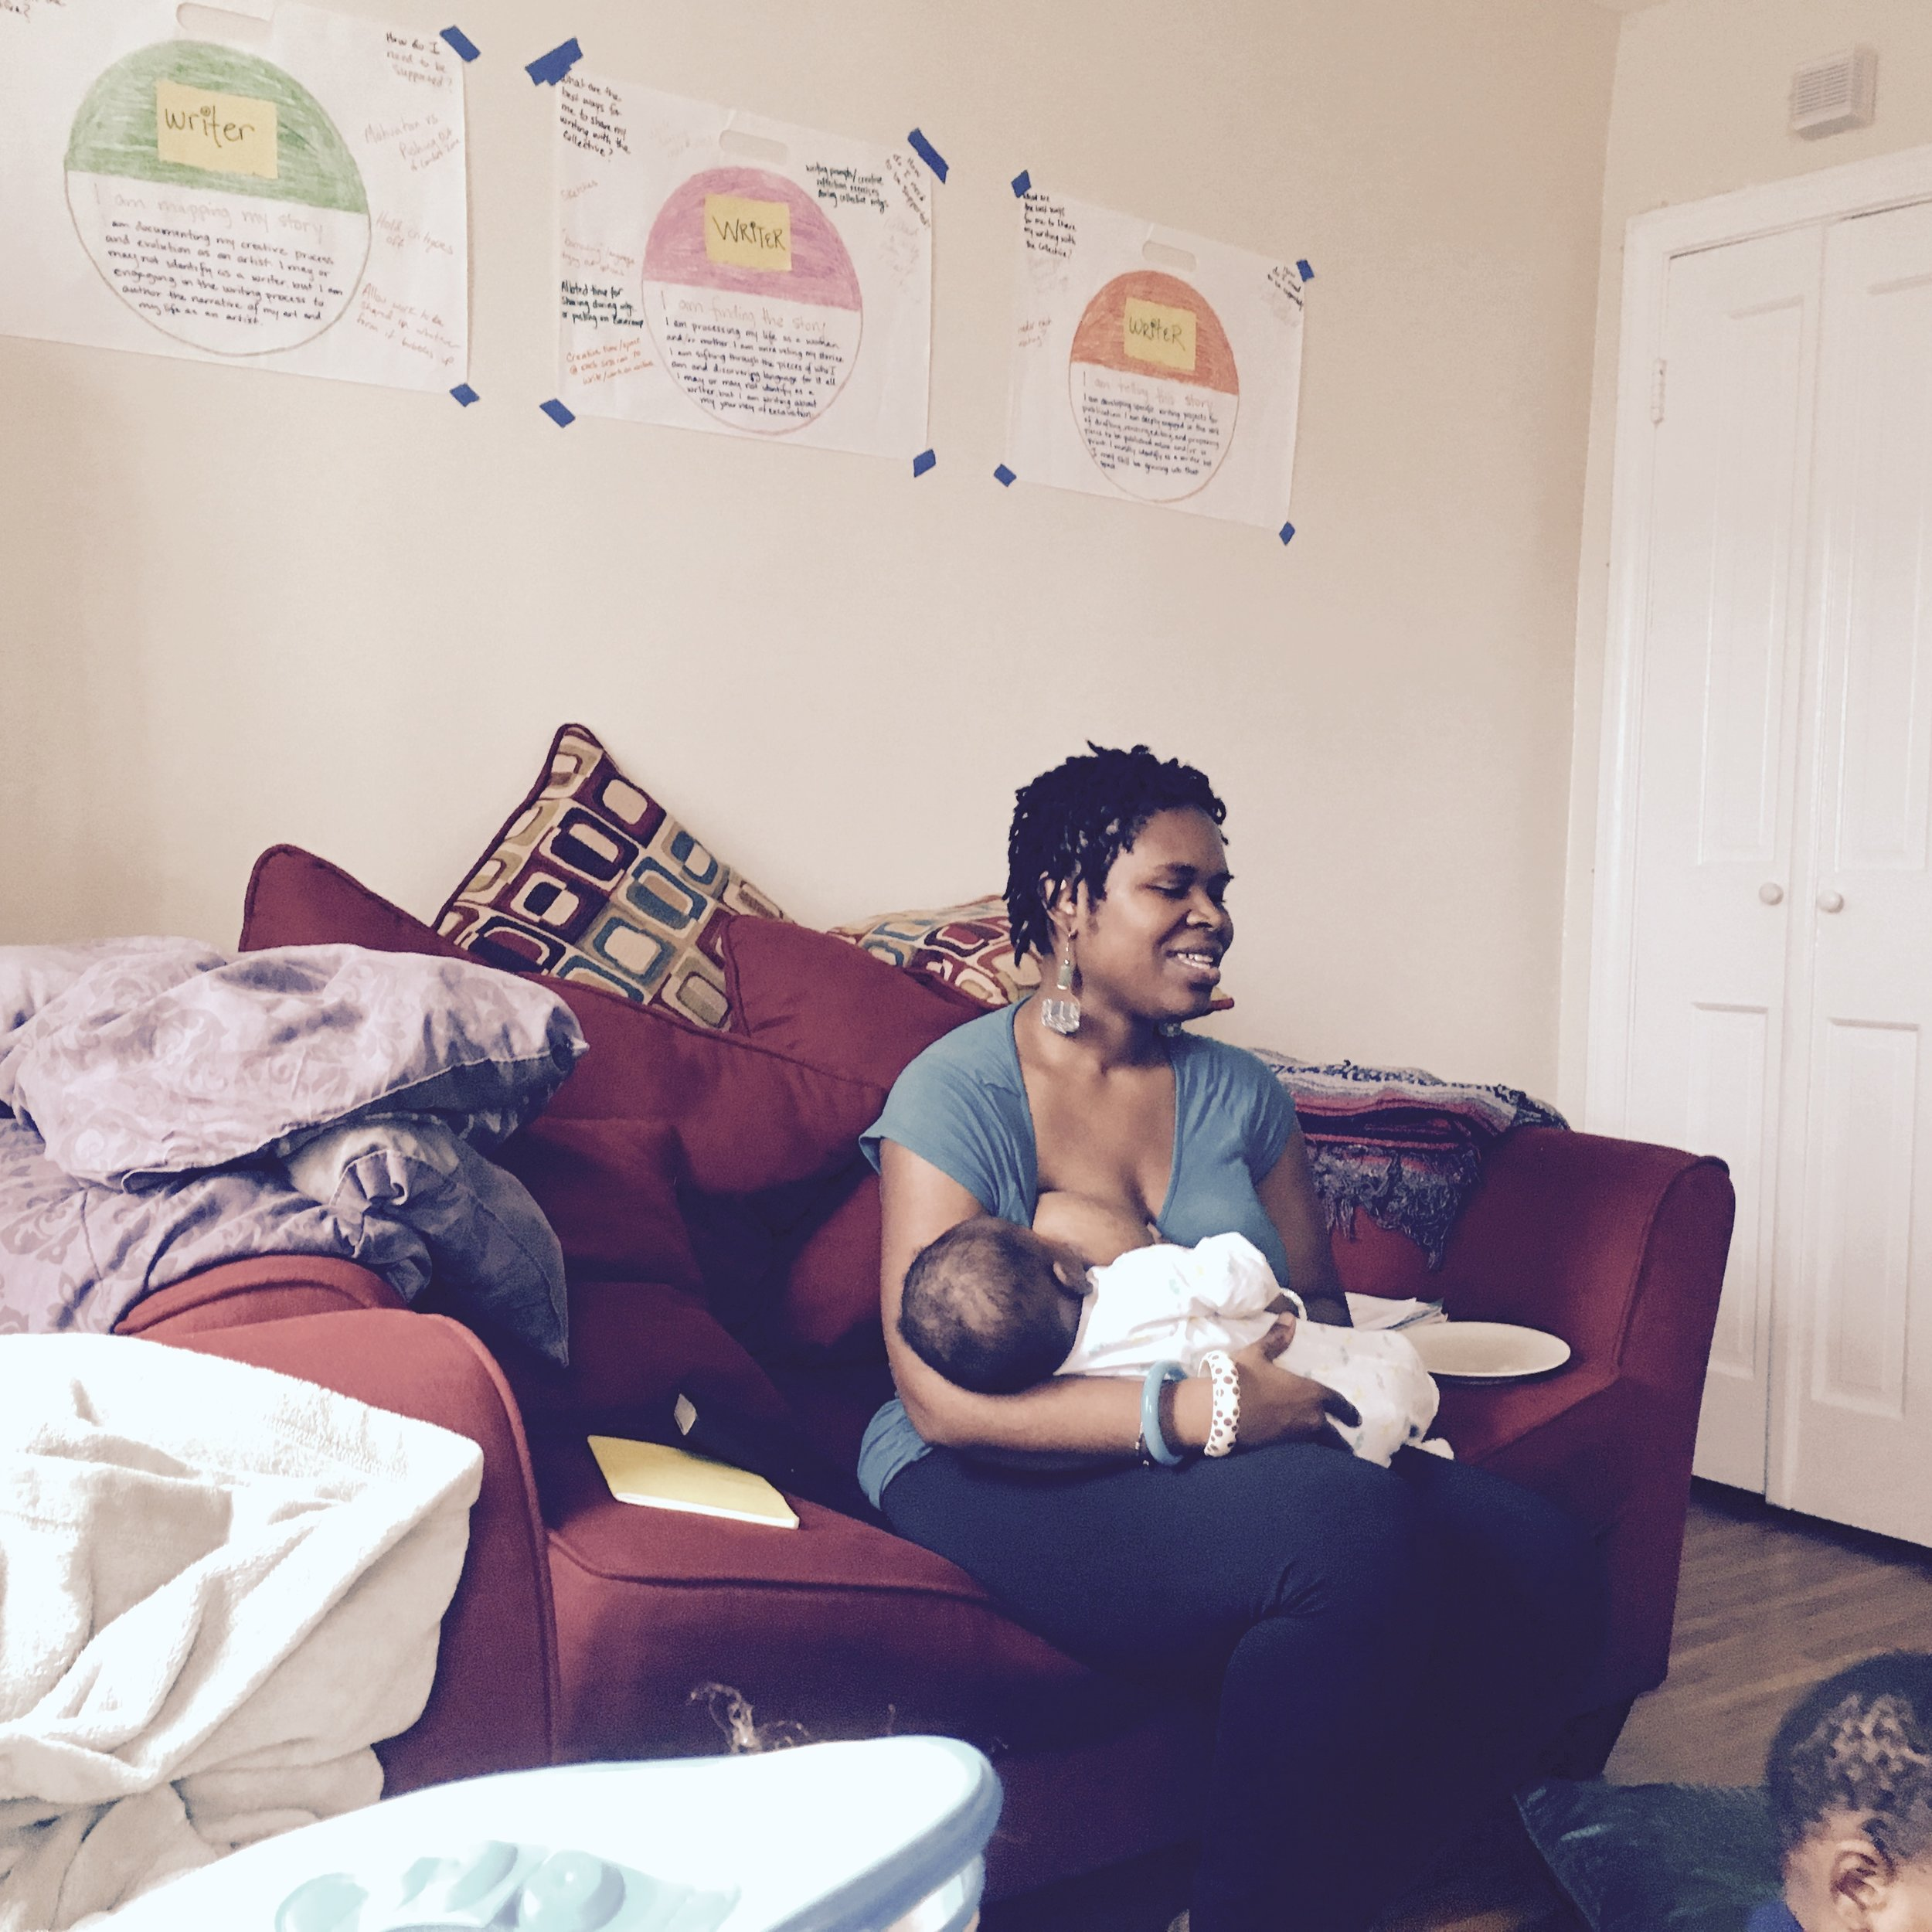 Nursing baby Wonder at a Mothering Gourd Writers Collective gathering, November 2015